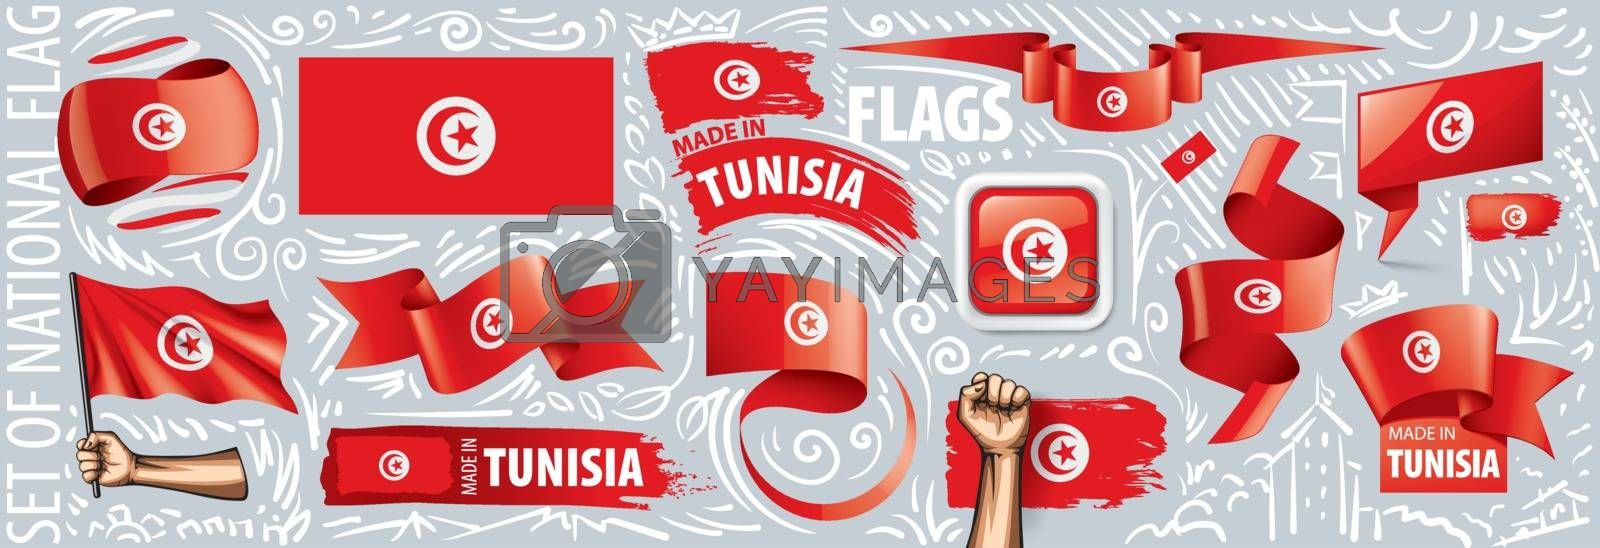 Vector set of the national flag of Tunisia in various creative designs.